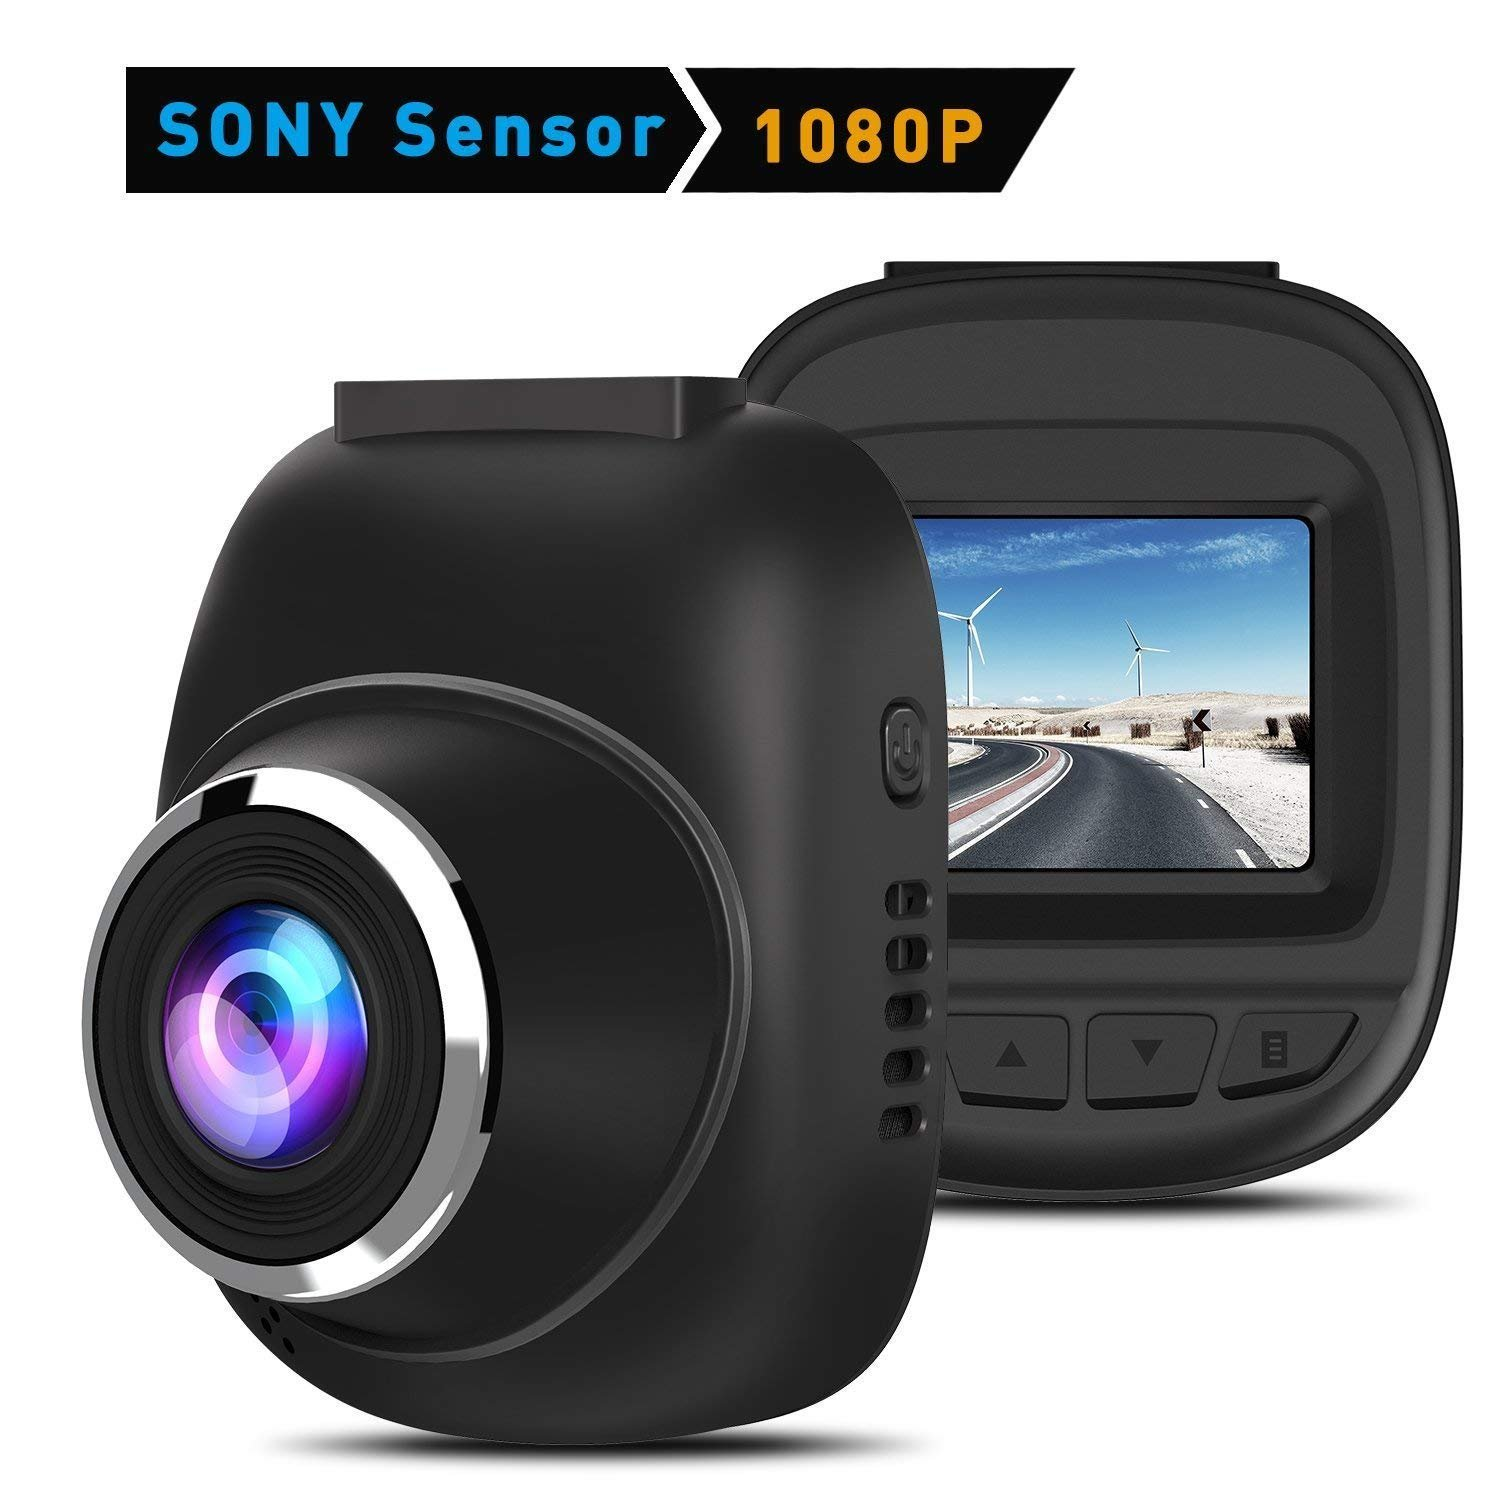 Dash Cam, CHGeek 1080P 170 Wide Angle Lens Car Cameras with Sony Sensor Driving Recorder Dashboard Cameras for Cars with Super Night Vision, WDR, Loop Recording, Parking Monitor DC1001